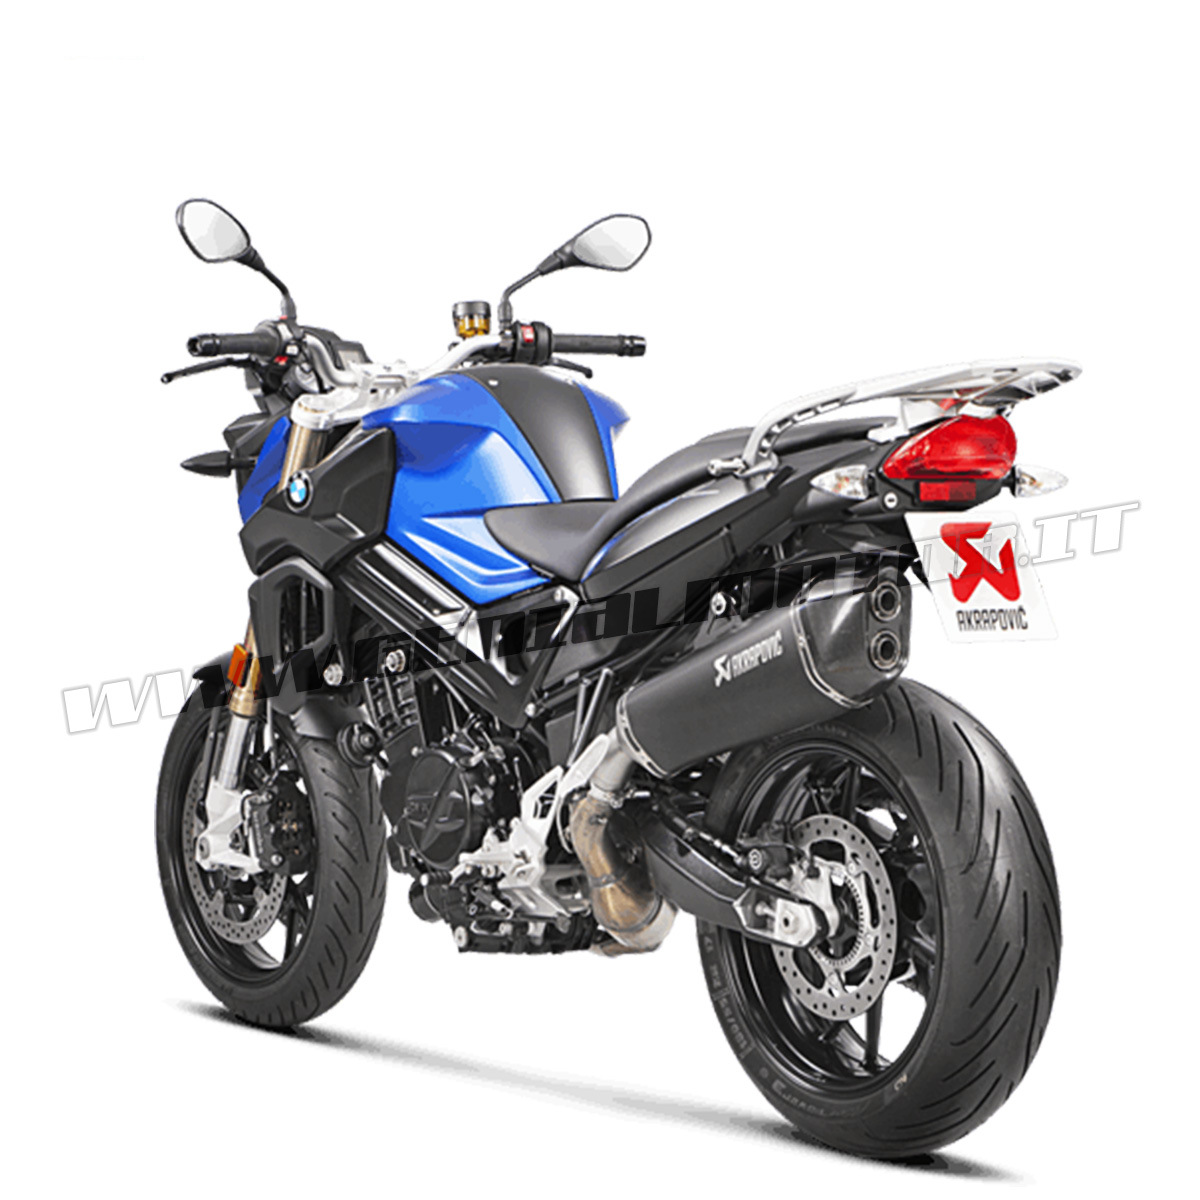 Details About Exhaust Titanium Approved Muffler Akrapovic For Bmw F800r 2017 2019